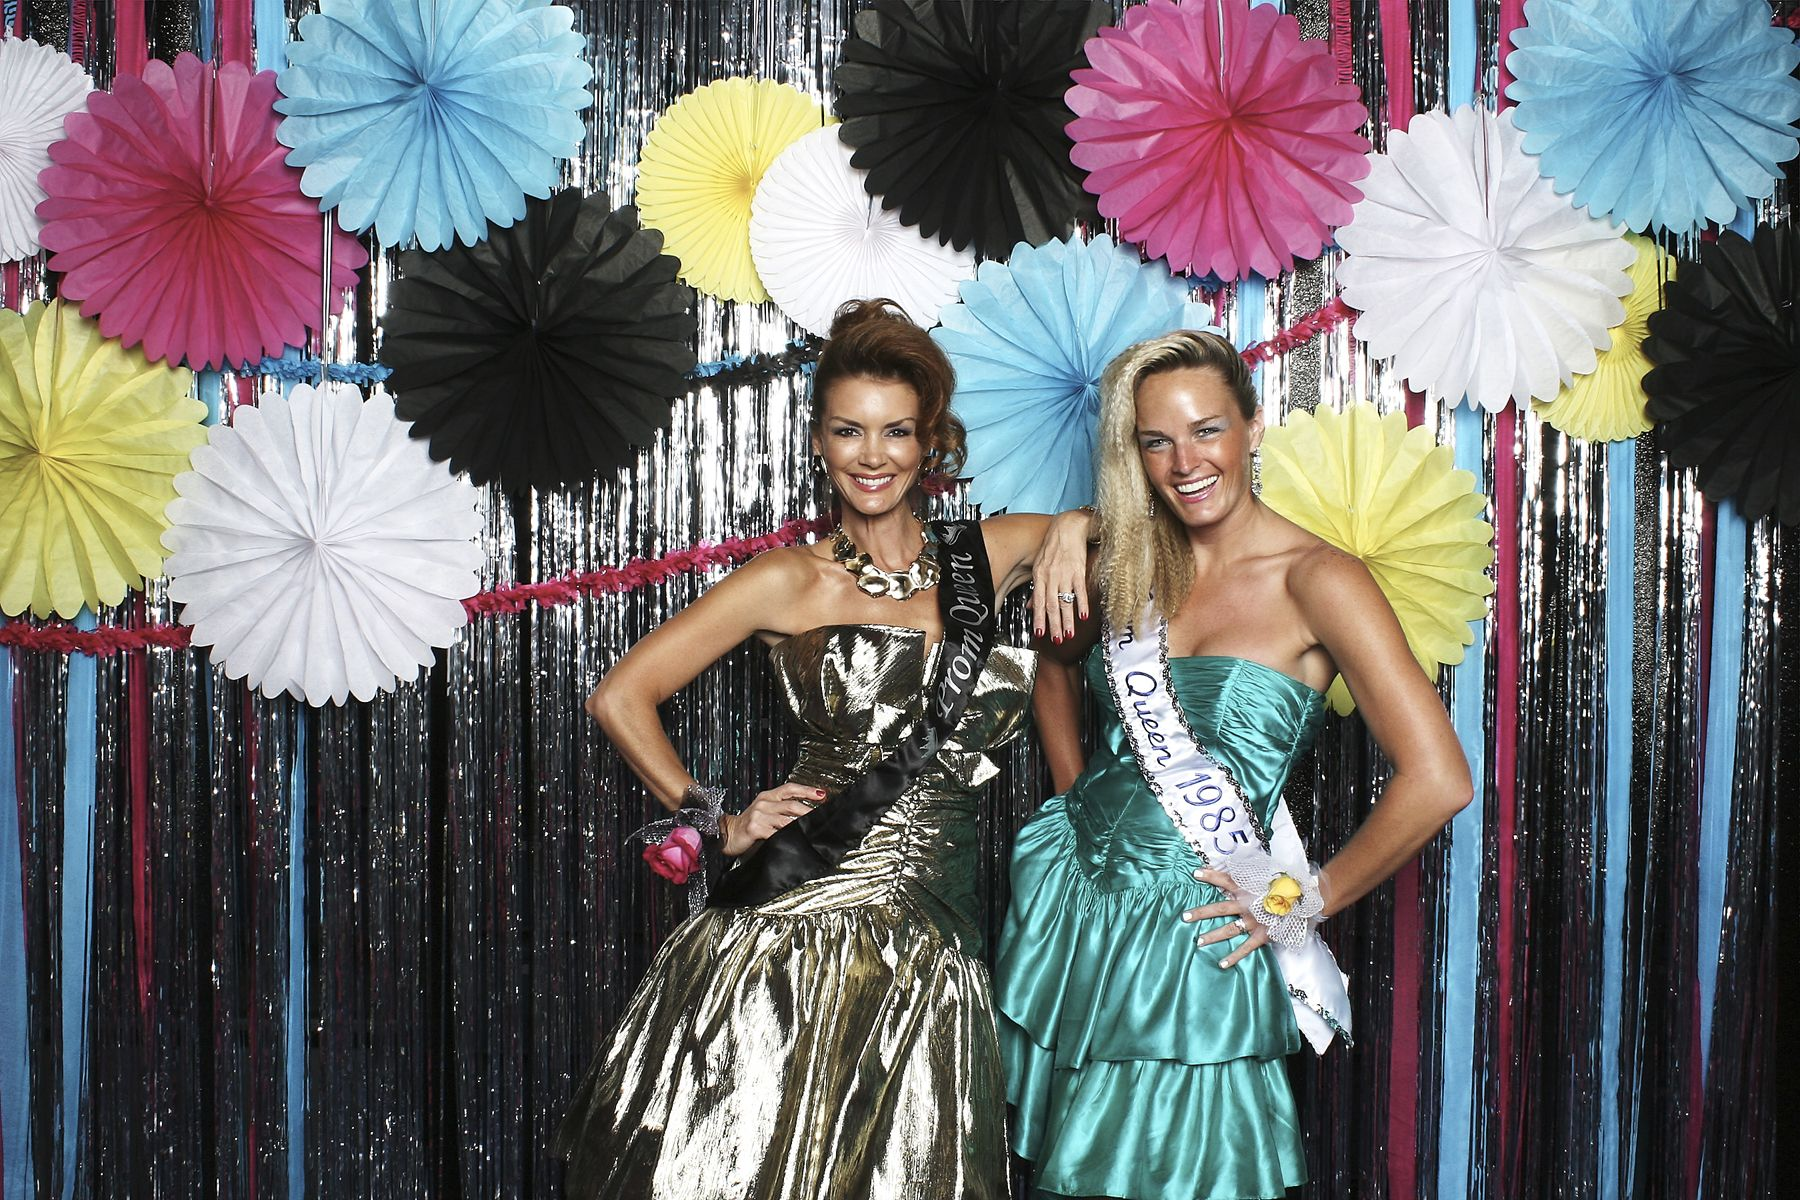 Working the 80 39 s prom theme in our photo booth more for 80s prom decoration ideas